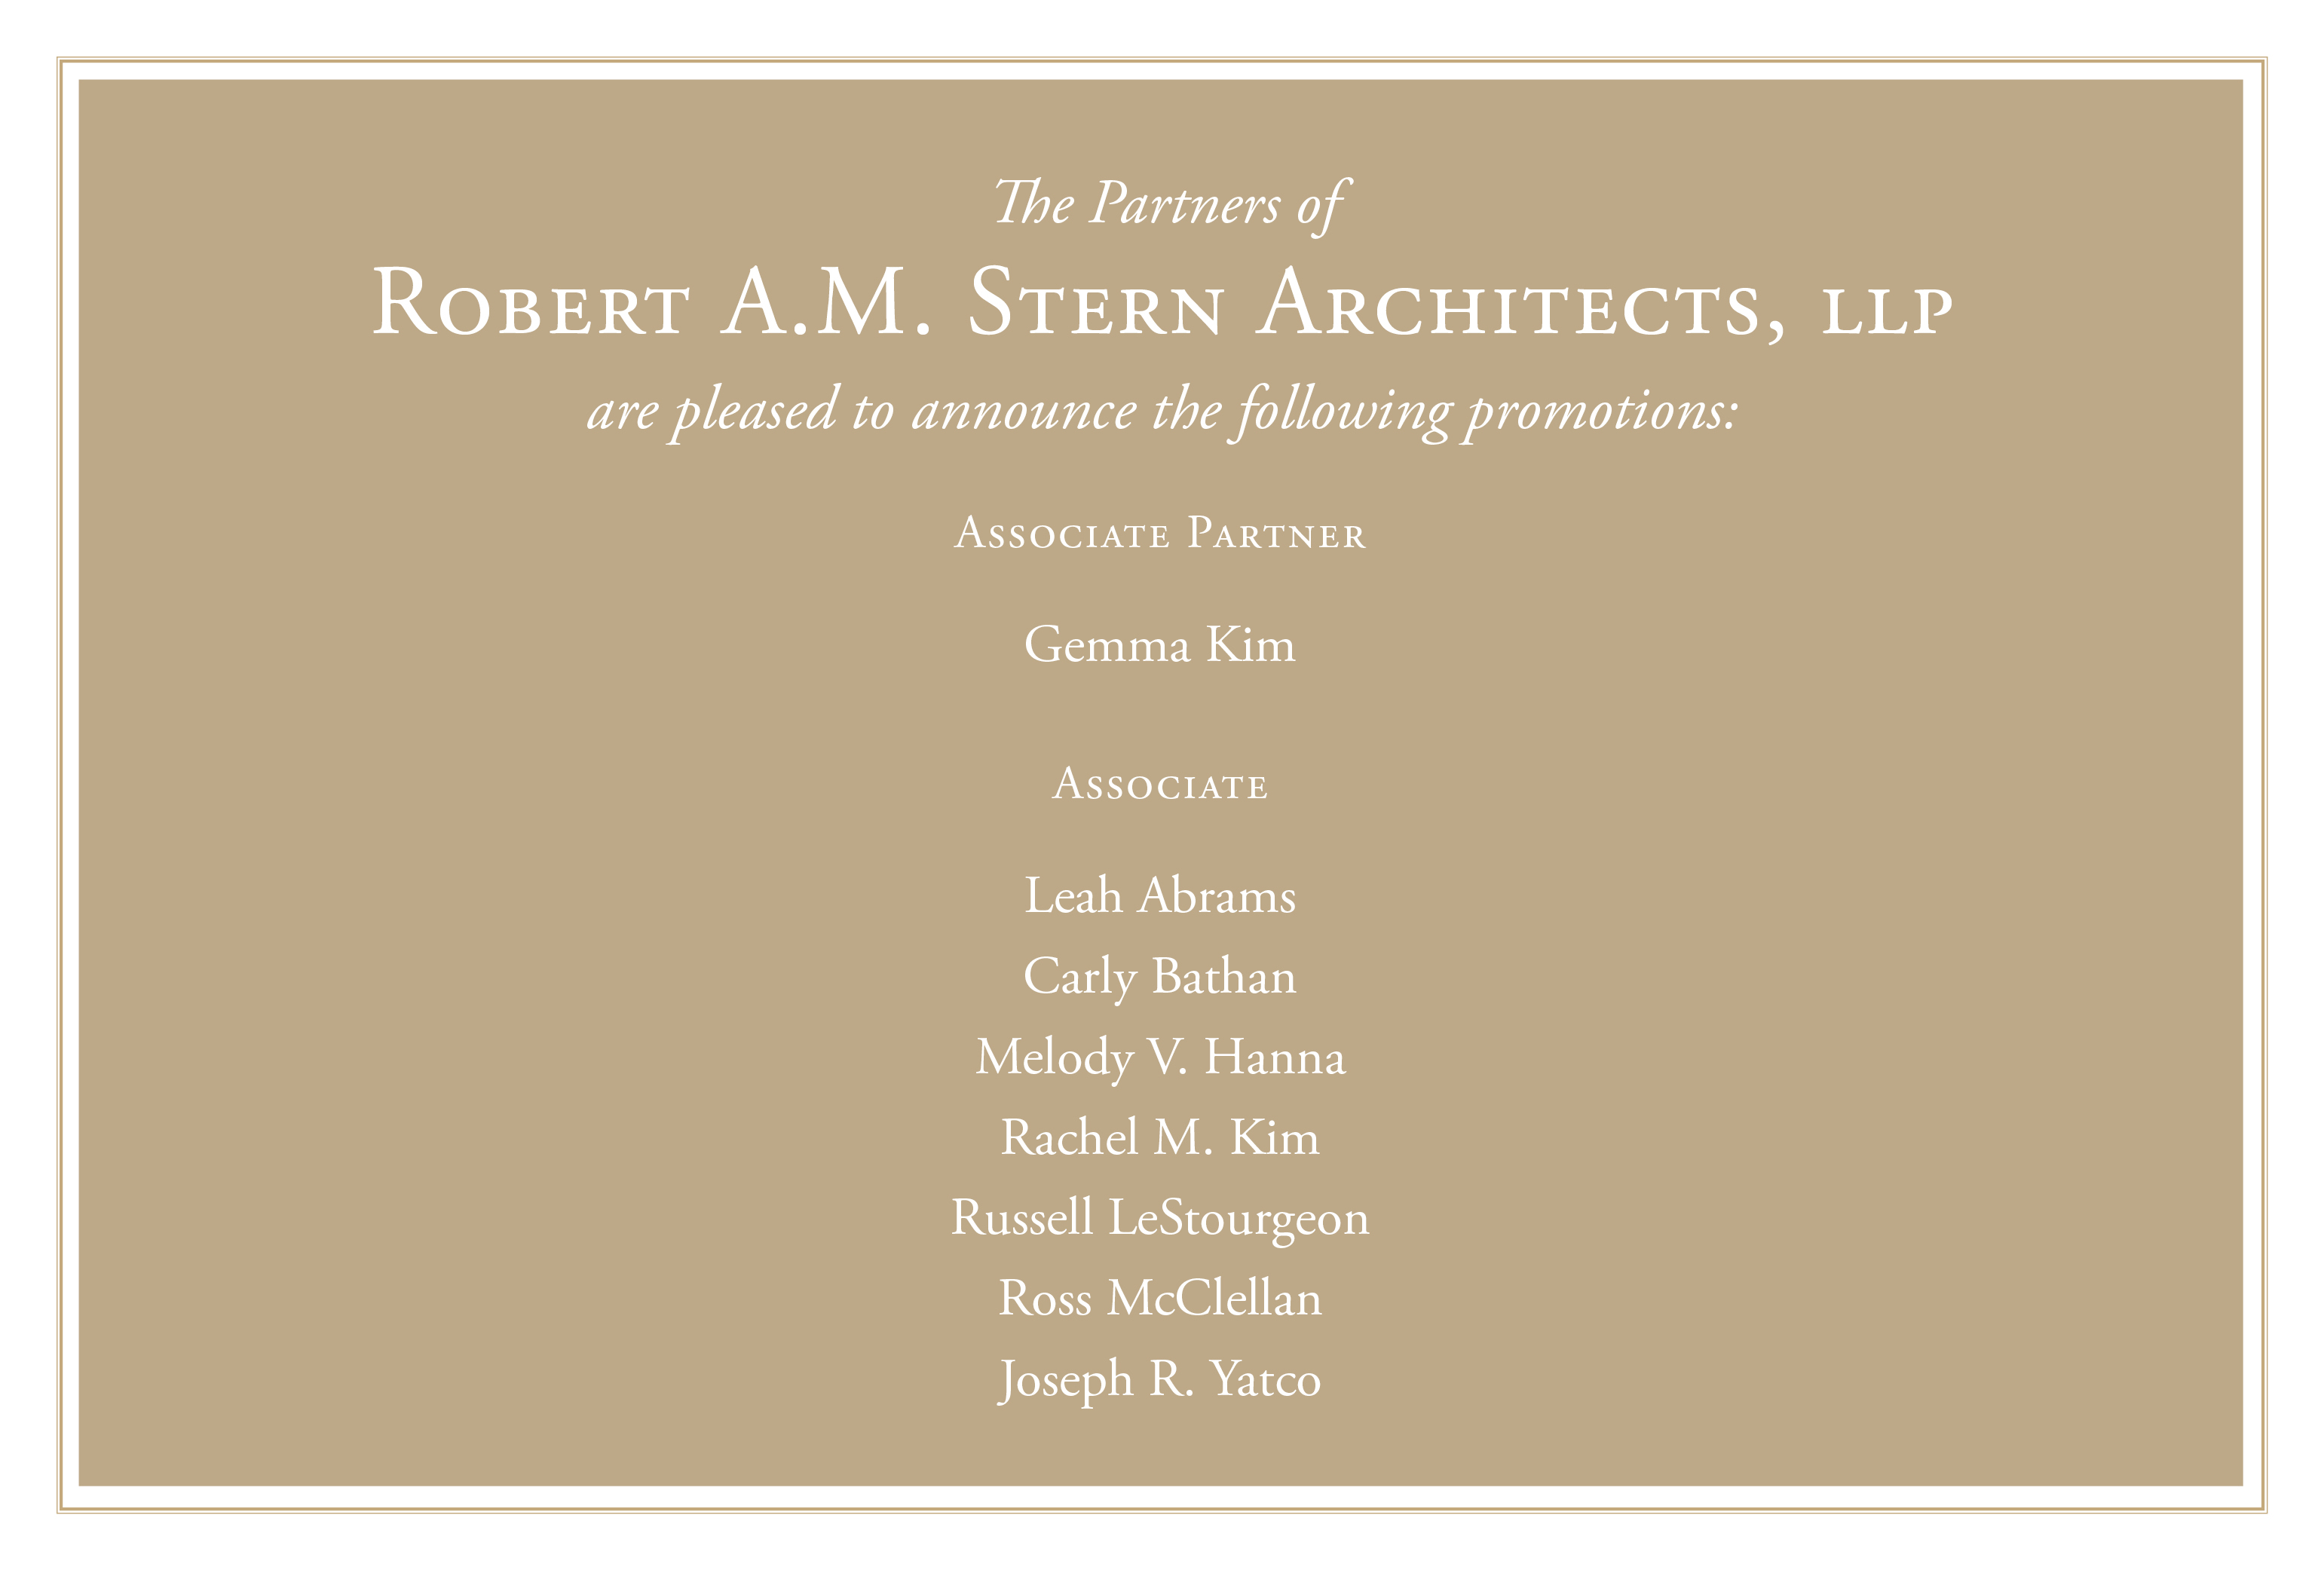 Robert A.M. Stern Architects Announces New Promotions